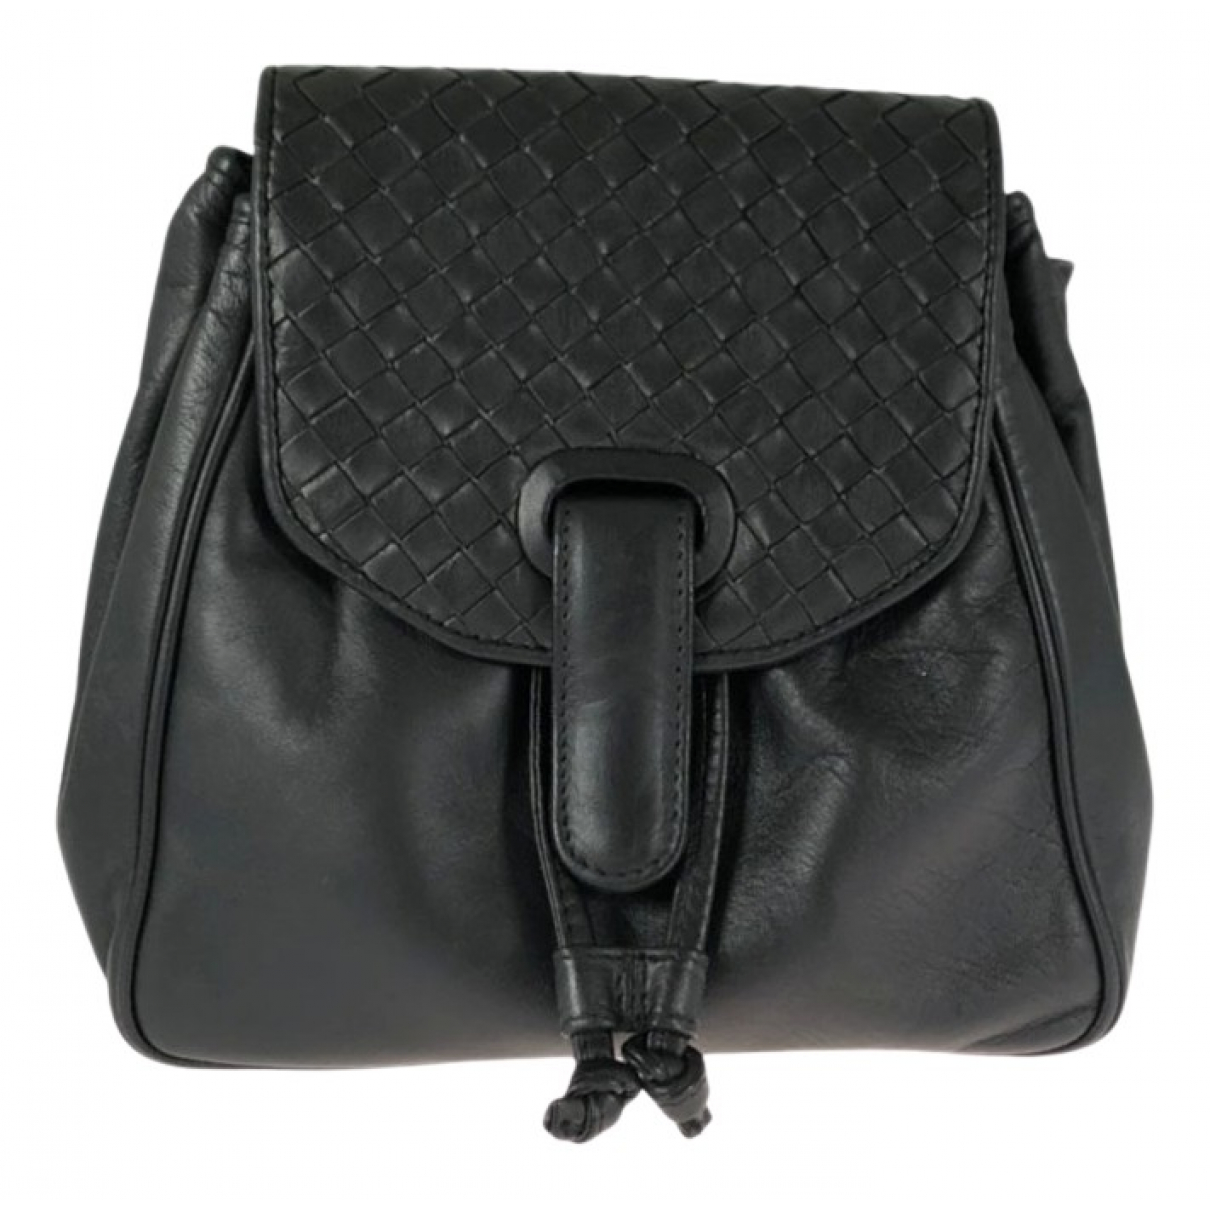 Bottega Veneta N Black Leather backpack for Women N